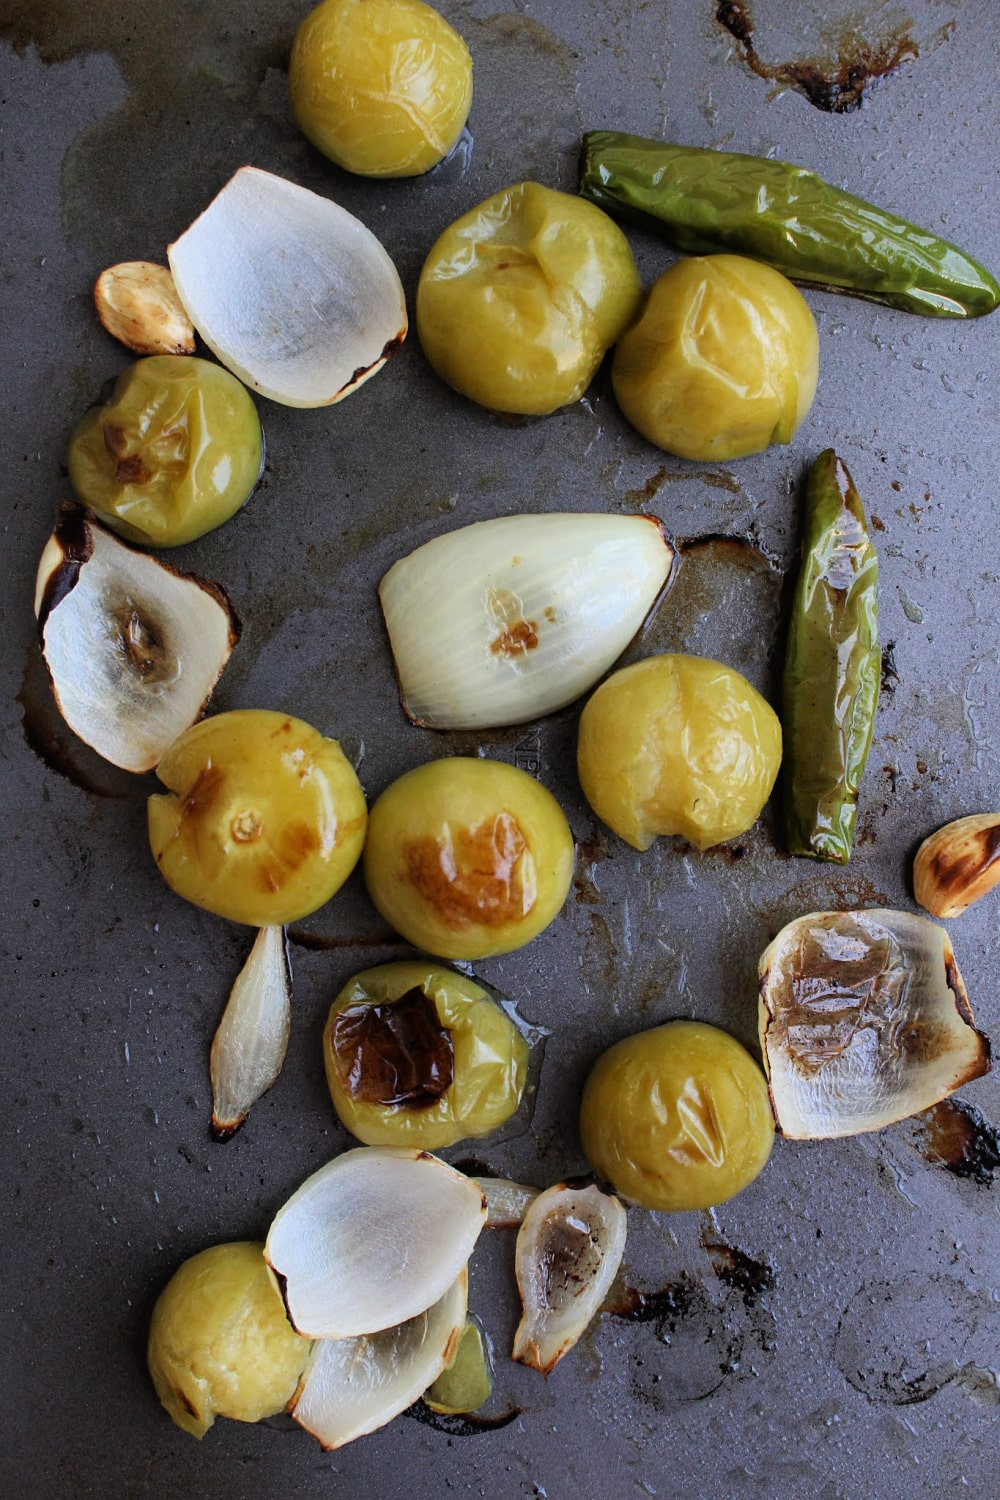 Roasted tomatillos and onions on a baking sheet.